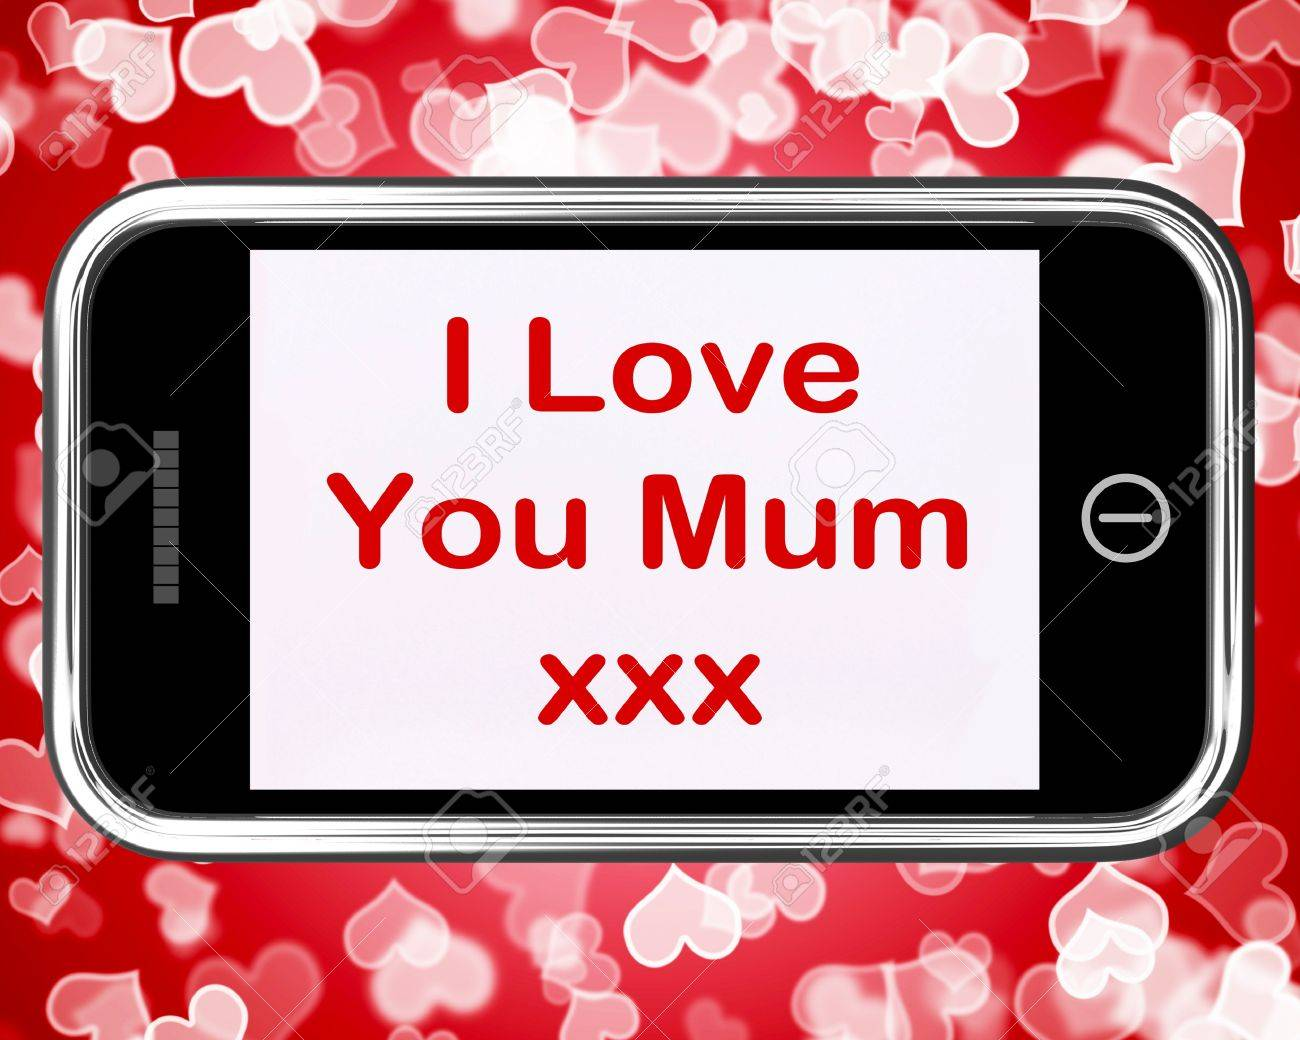 I Love You Mum Mobile Message As A Symbol For Best Wishes Stock Photo - 14562523